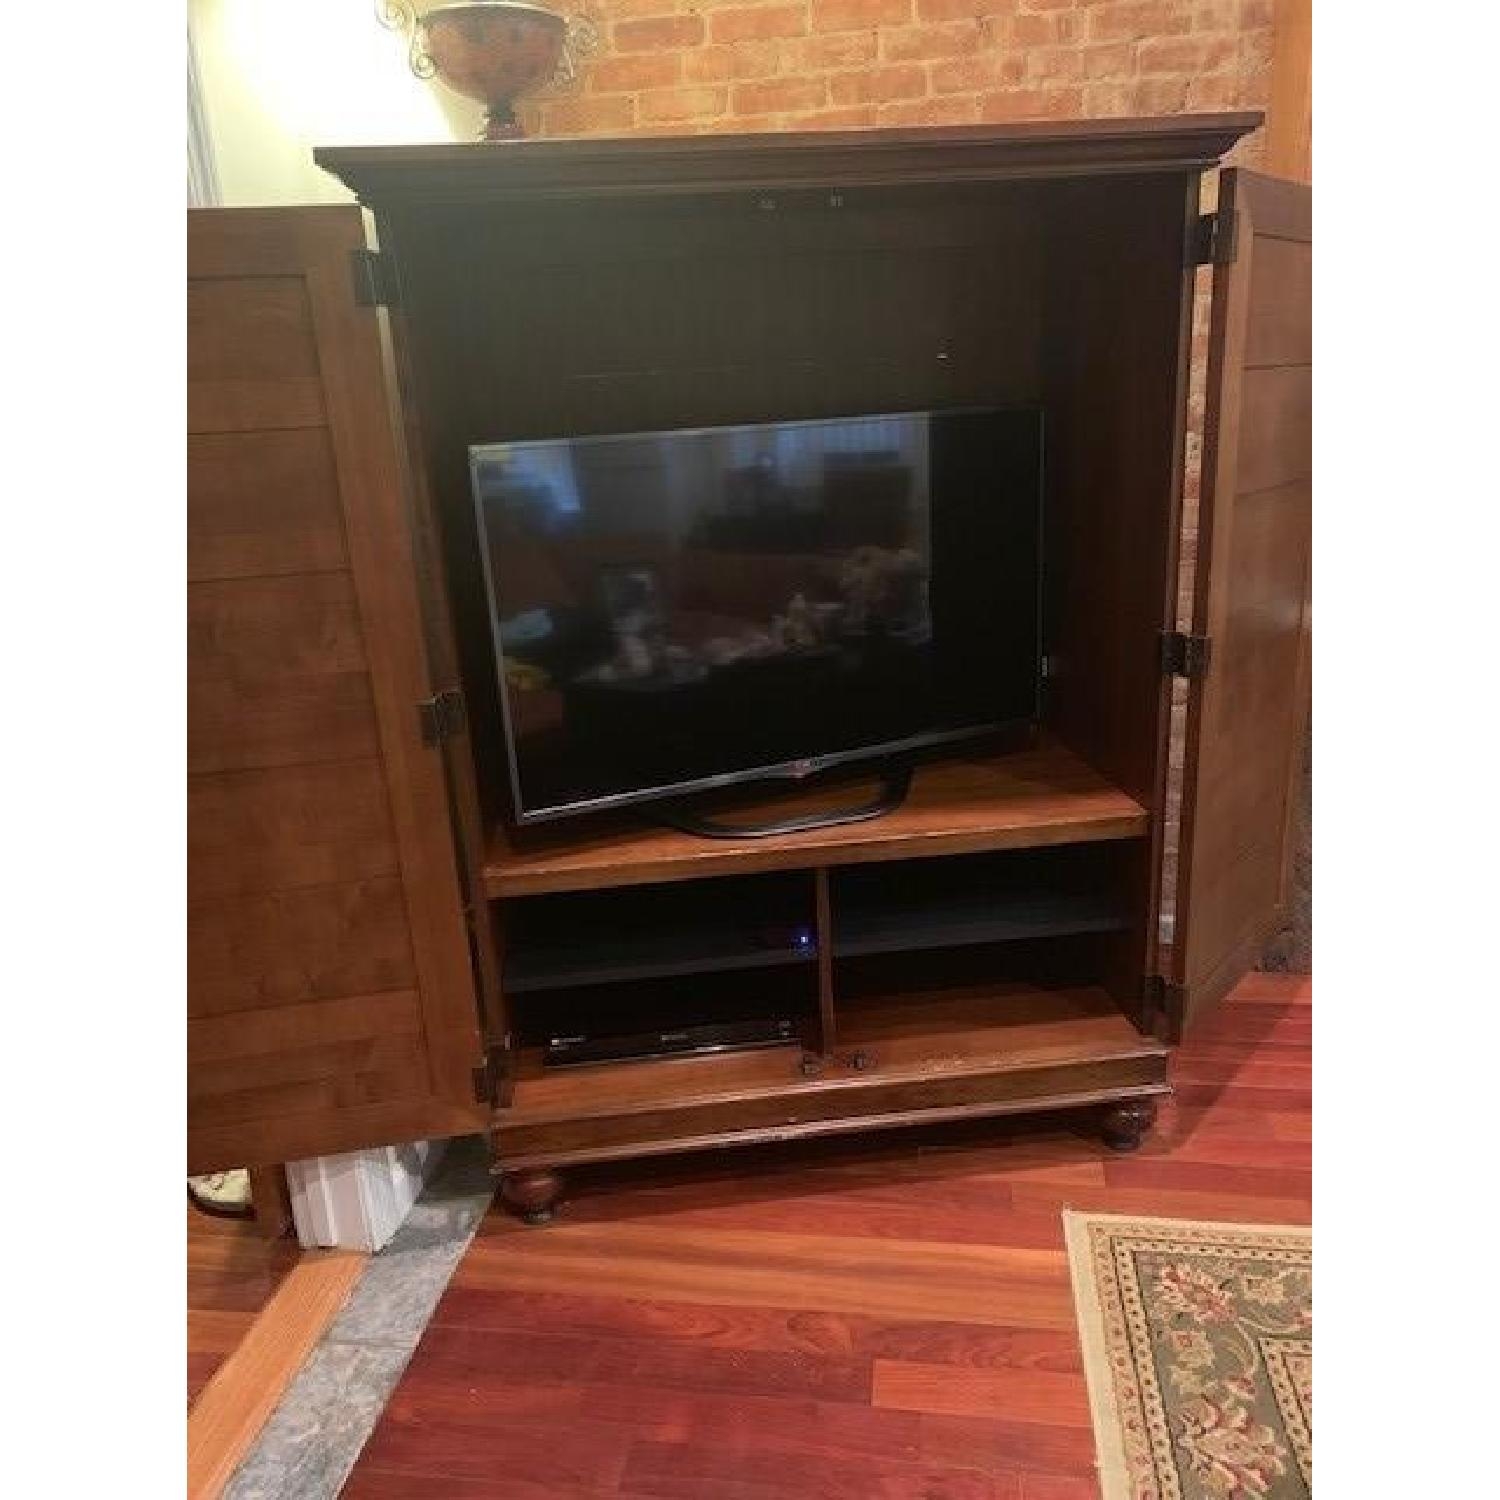 Hooker Furniture Media Cabinet/Armoire in Mahogany Finish - image-5